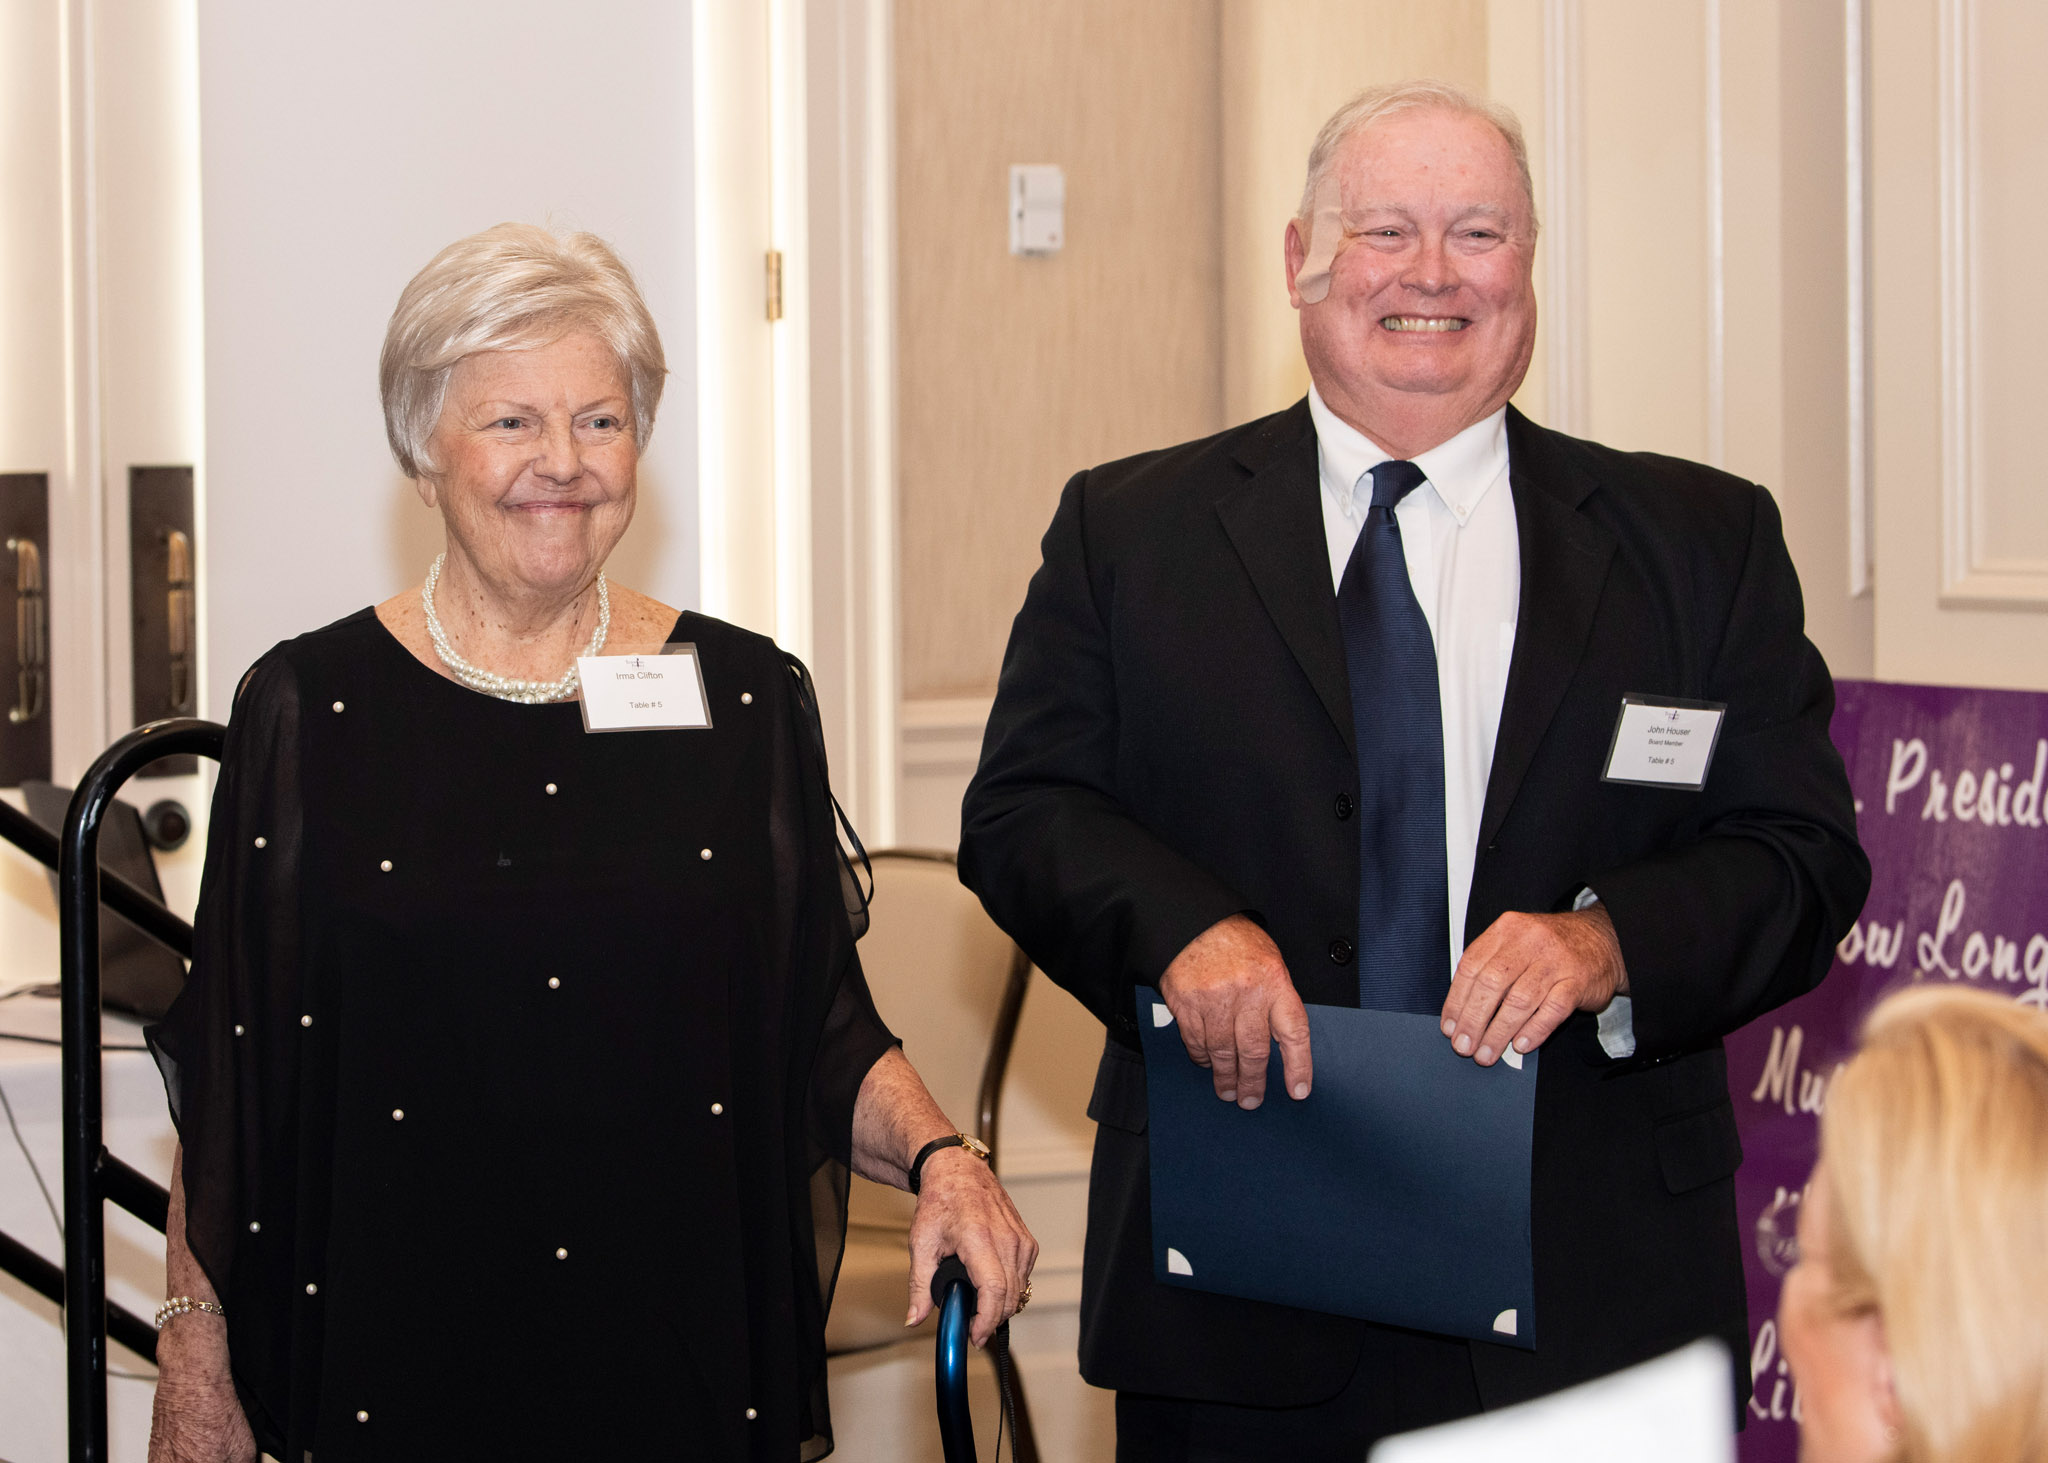 05-Irma-Clifton-receiving-Lifetime-Achievement-Award-from-John-Houser